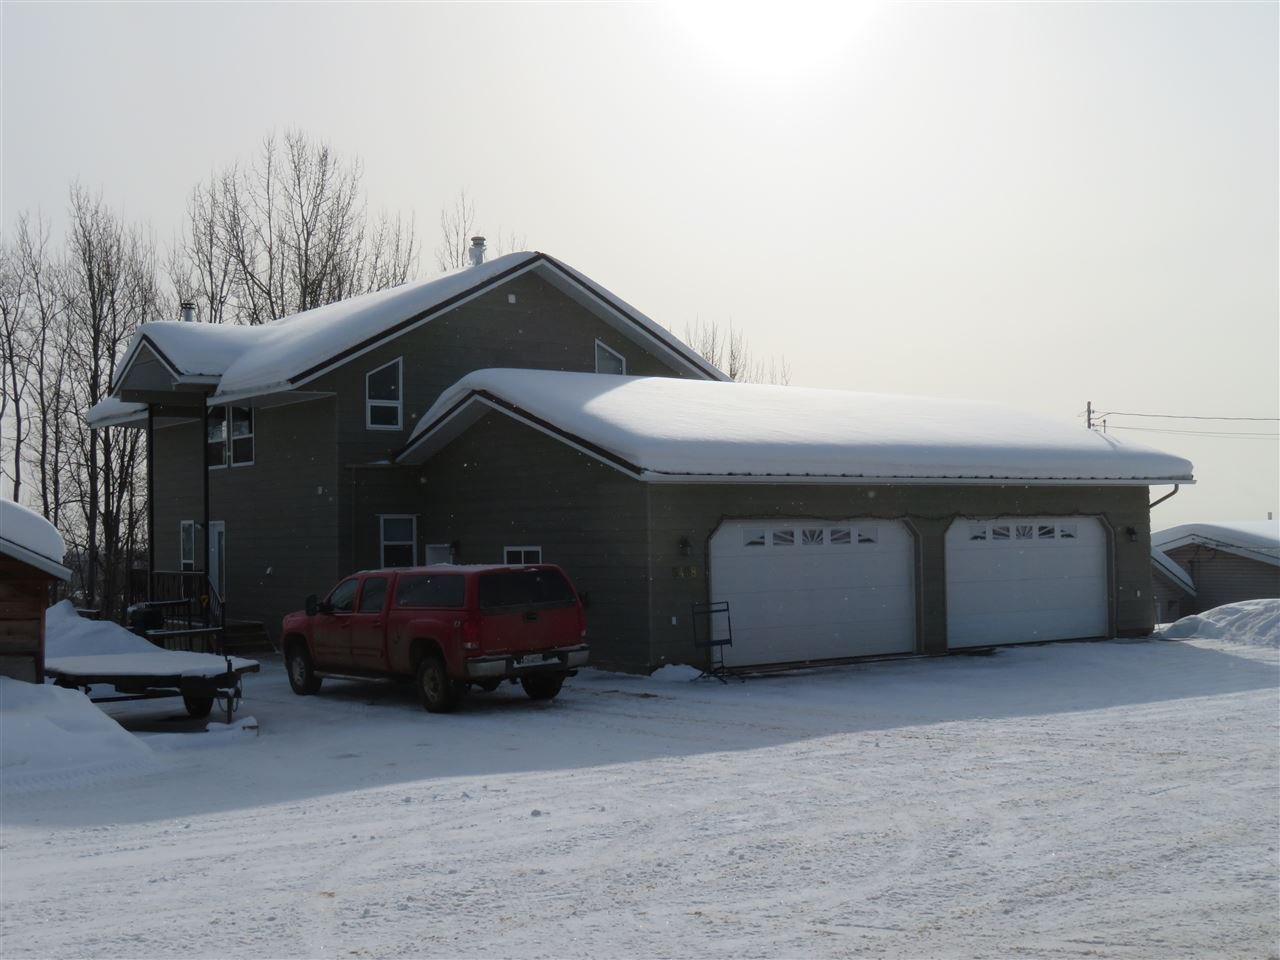 Photo 26: Photos: 5408 51 Street in Fort Nelson: Fort Nelson -Town House for sale (Fort Nelson (Zone 64))  : MLS®# R2168983